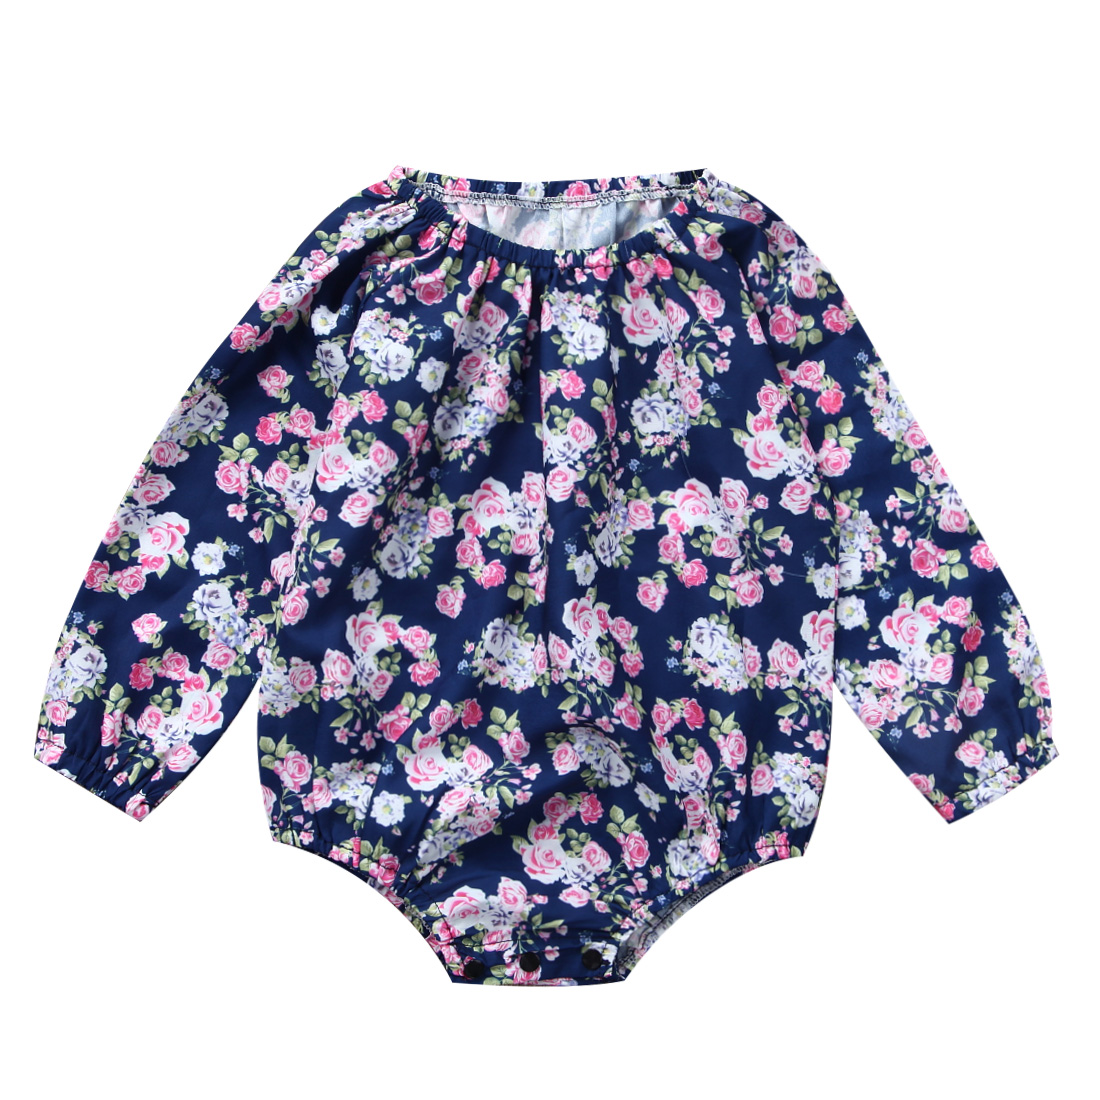 Flower Girl Romper Newborn Baby Girls Clothes Flower Long sleeves Romper Jumpsuit Outfits Sunsuit Clothing Lots 0-2Y